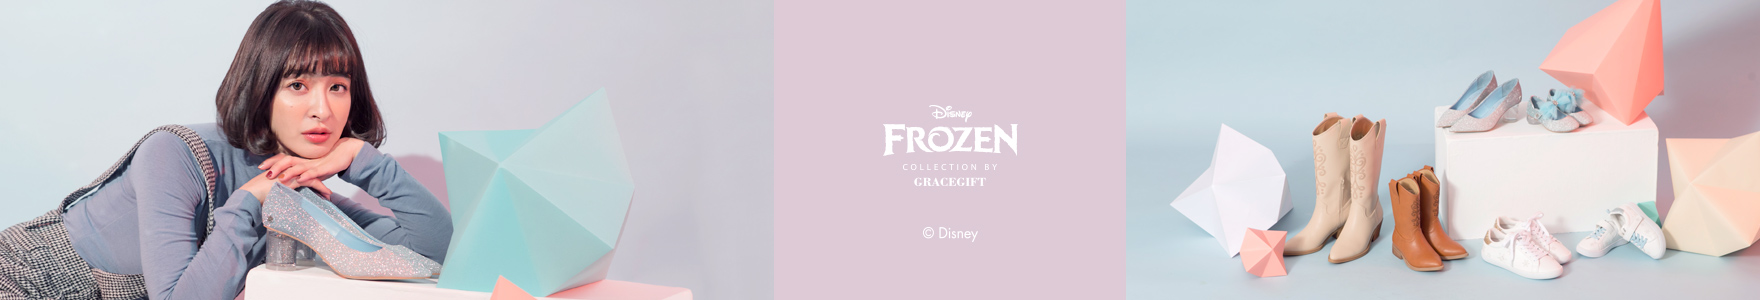 disney frozen collection